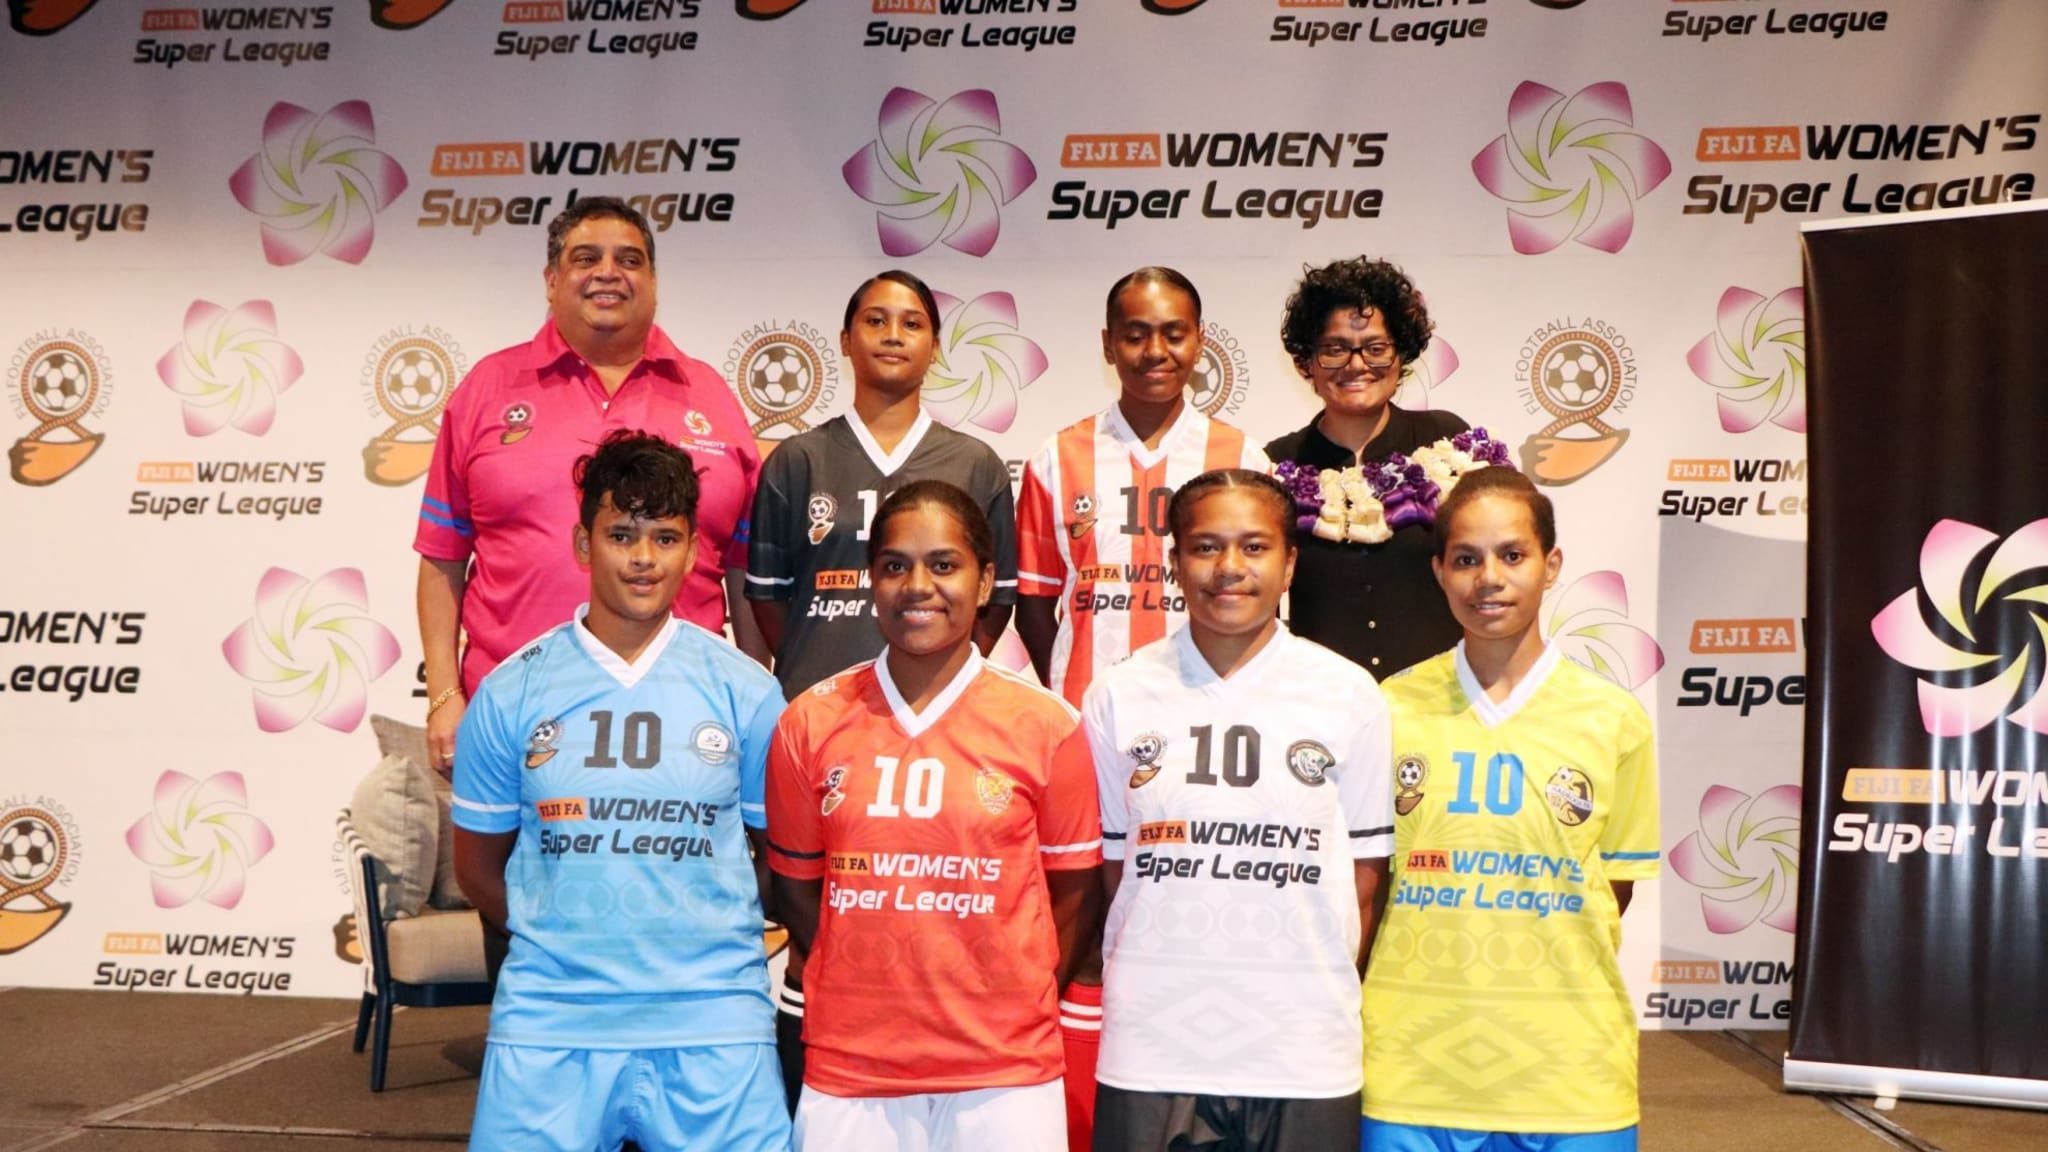 Fiji Women's Super League season launch